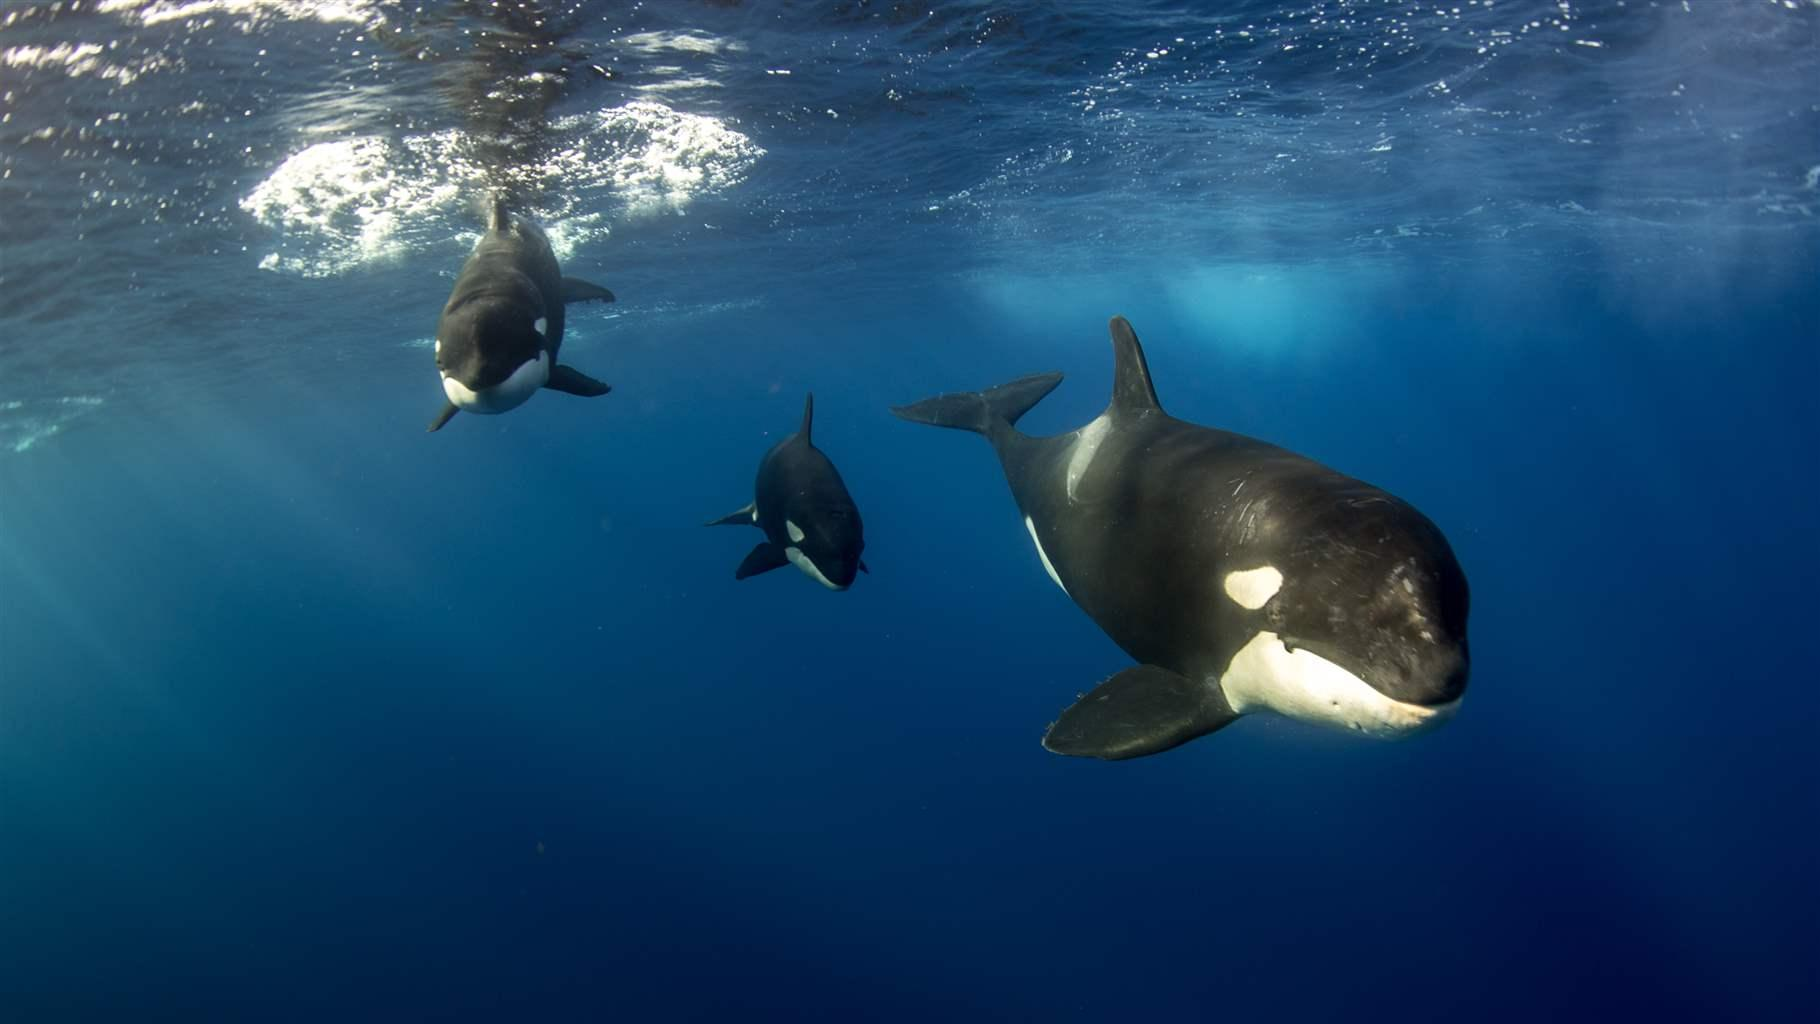 Governments Begin Considering New Ocean Conservation